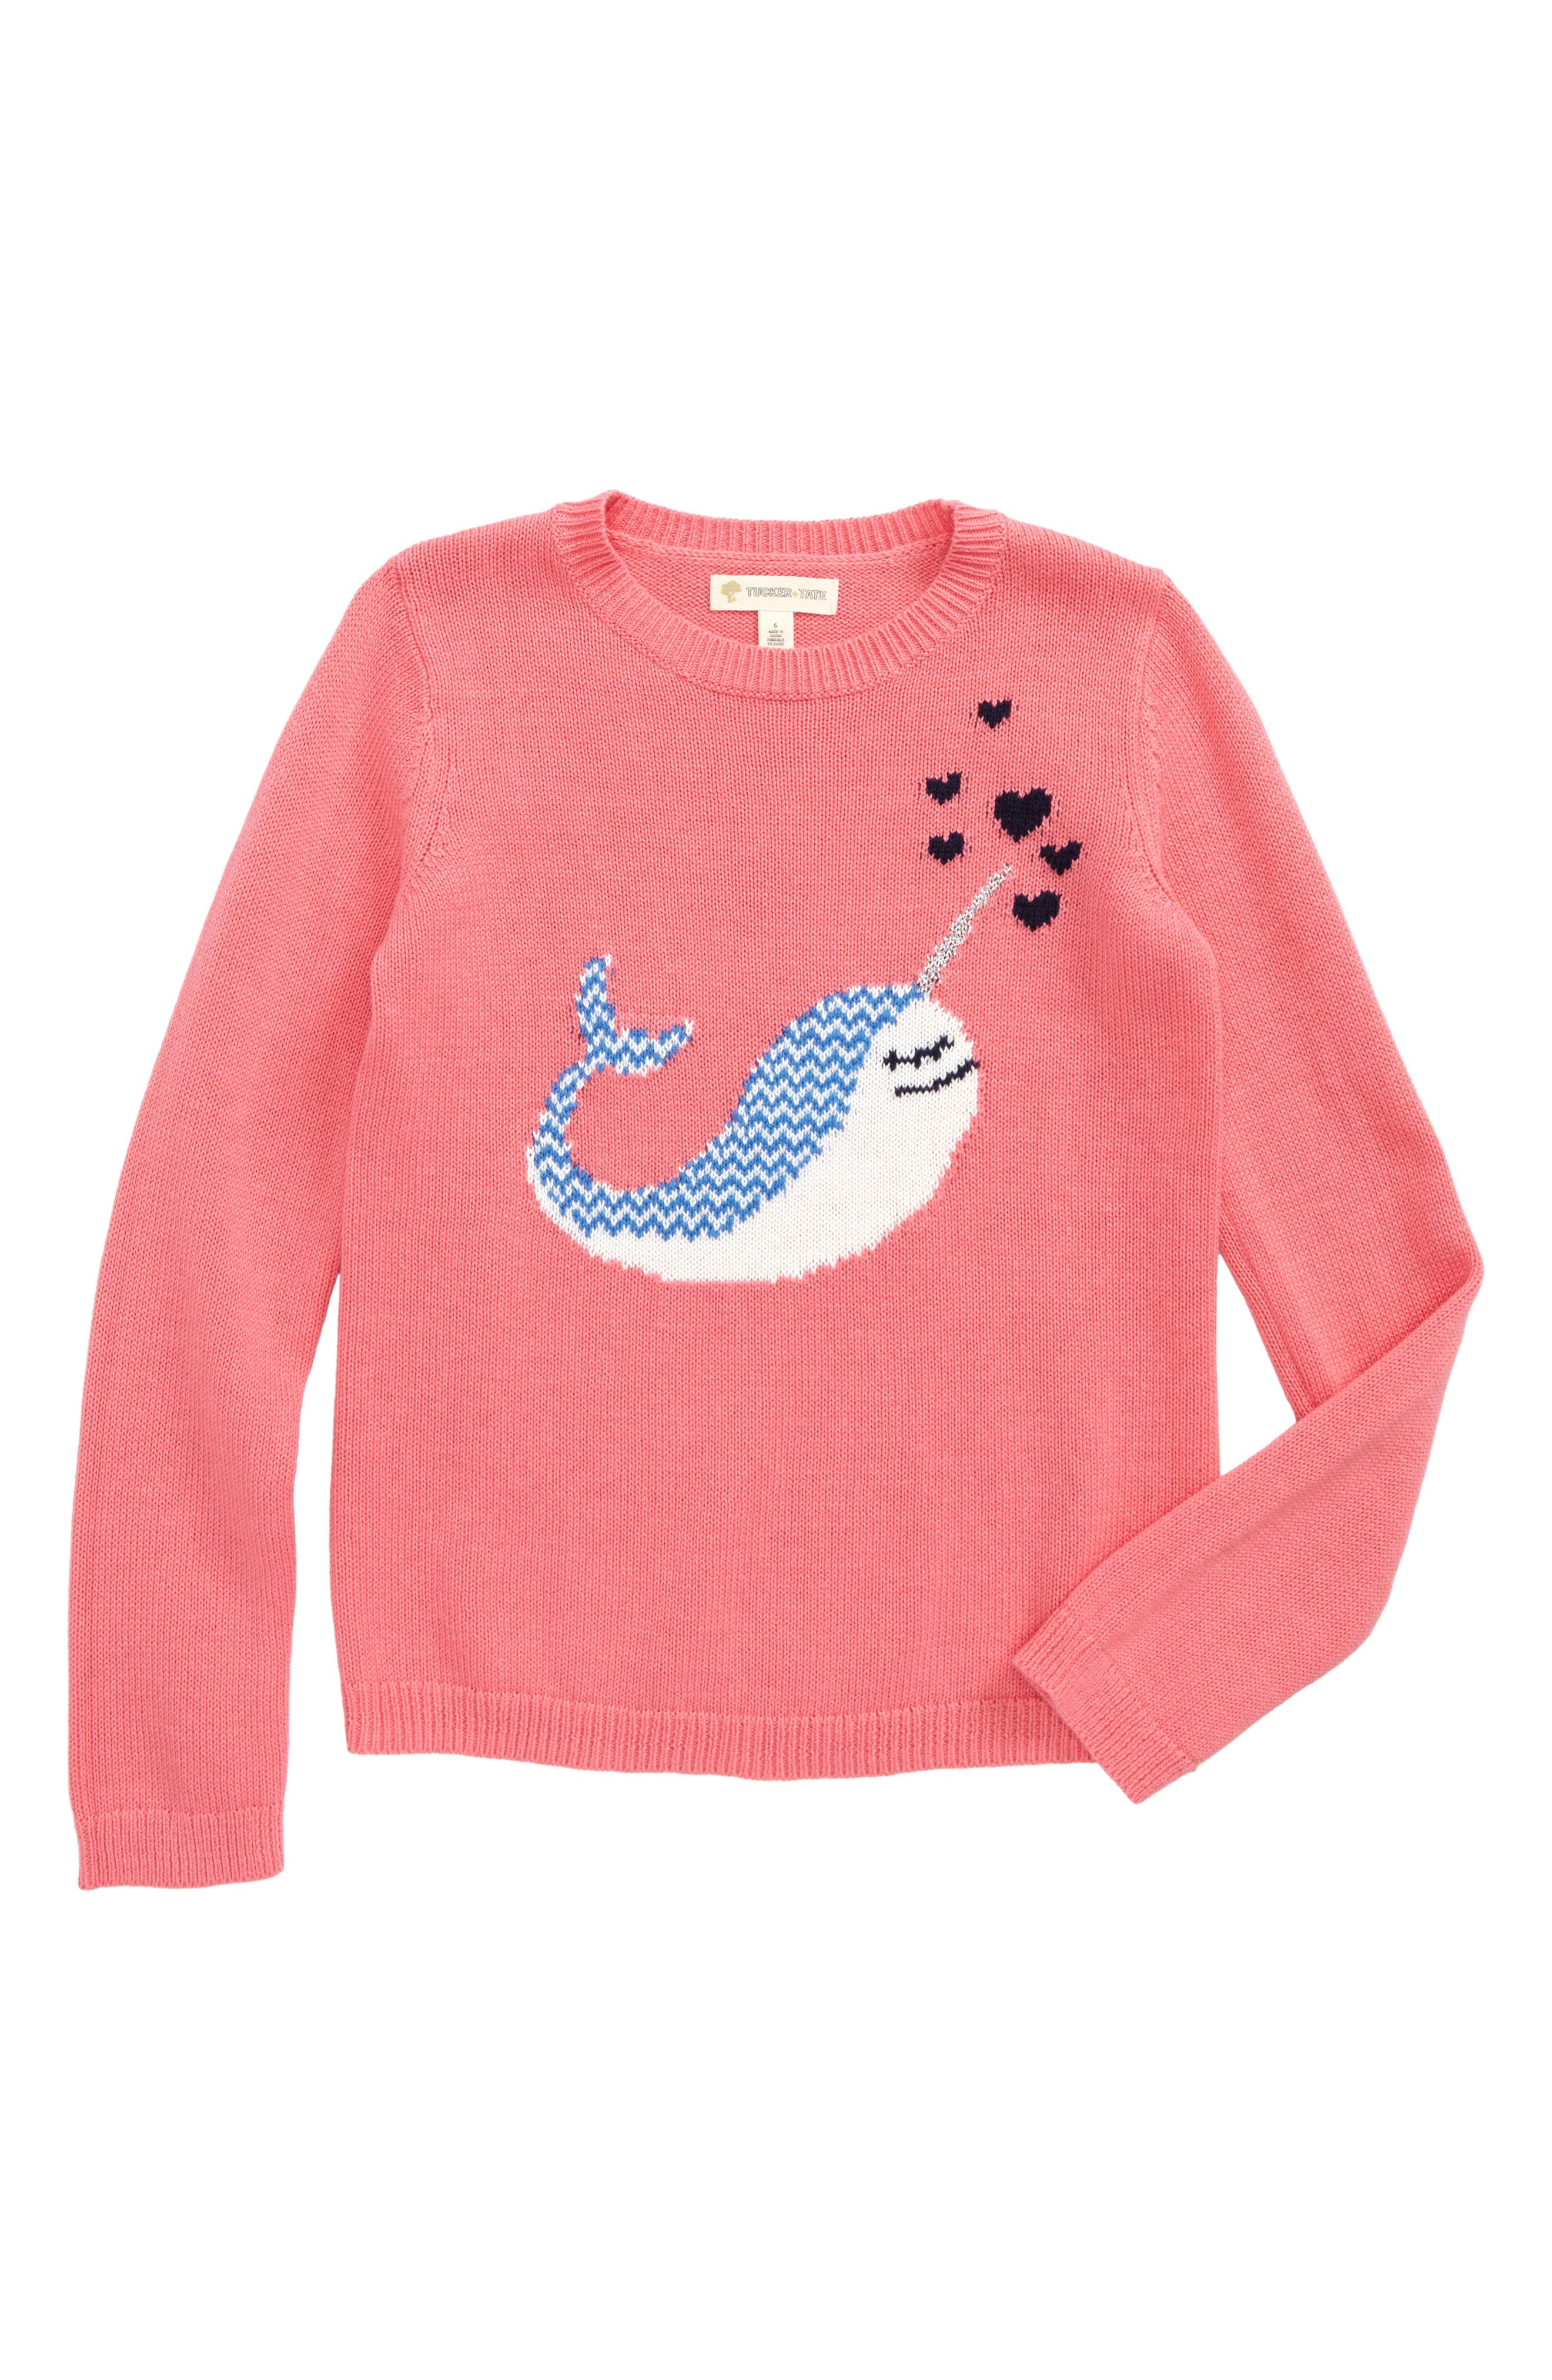 Tucker + Tate Icon Cotton & Cashmere Sweater (Toddler Girls, Little Girls & Big Girls)